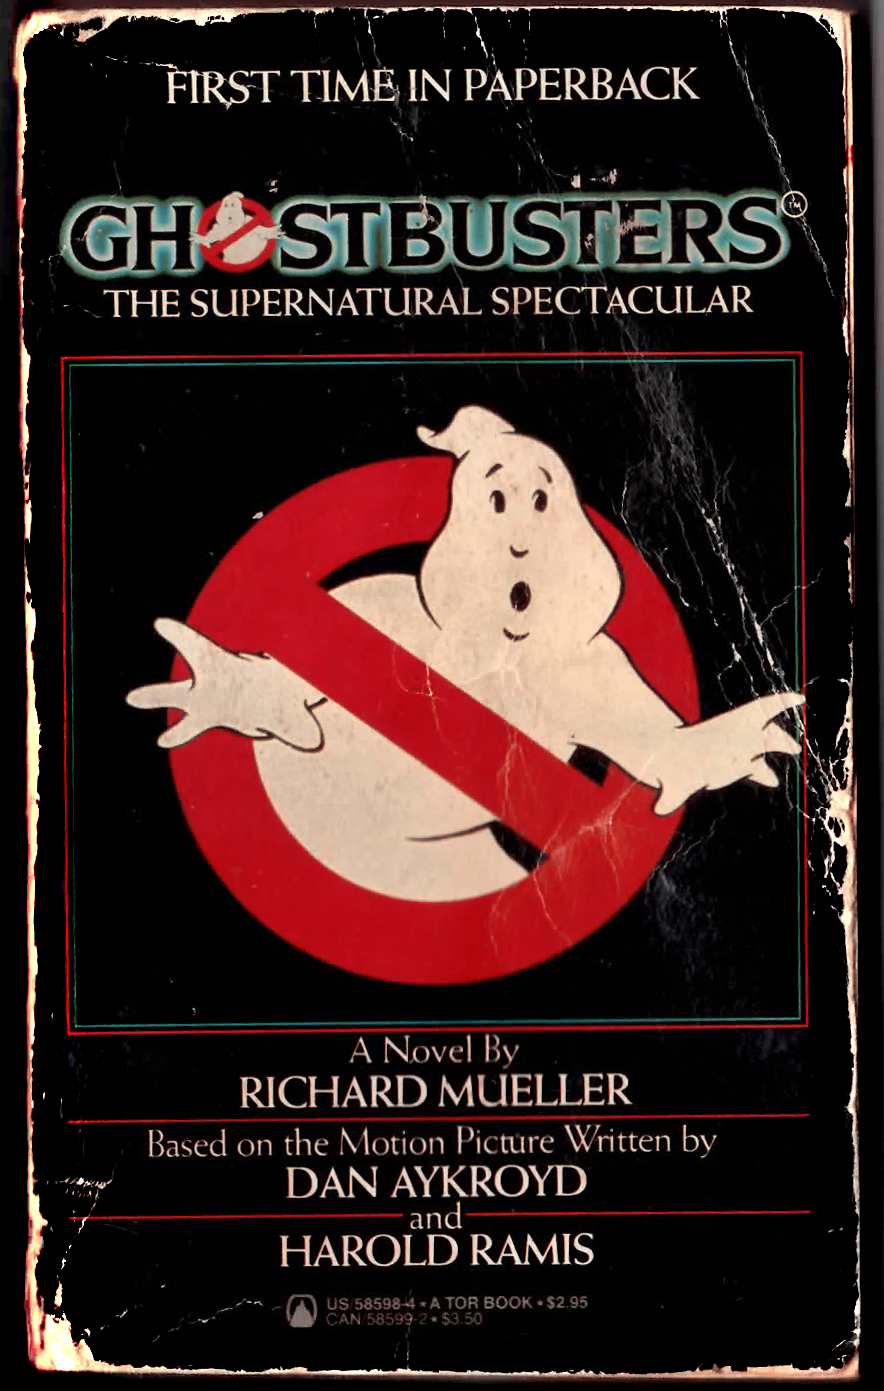 Ghostbusters: The Supernatural Spectacular